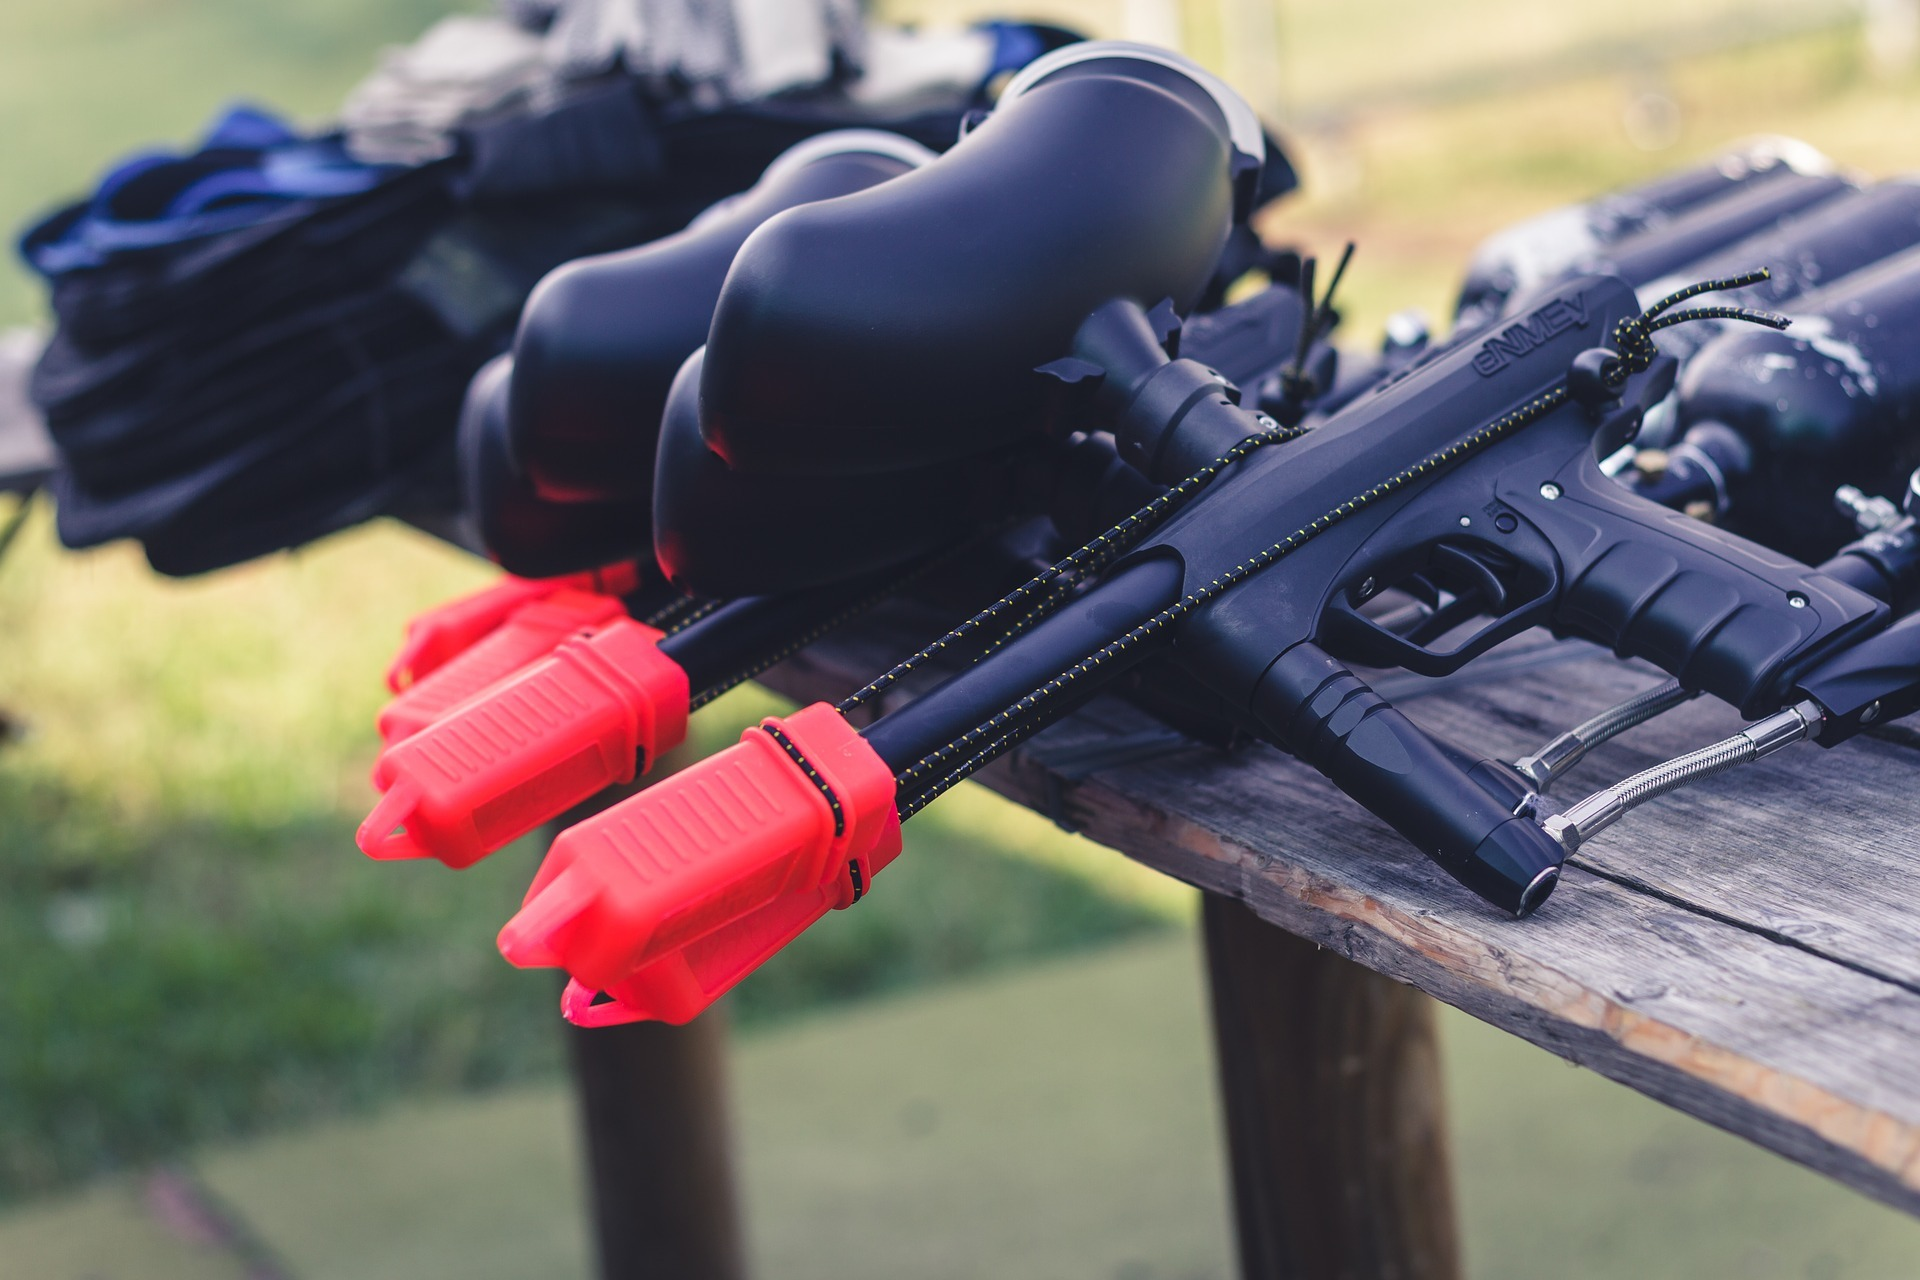 Paintball Weapon placed at the top of the Table